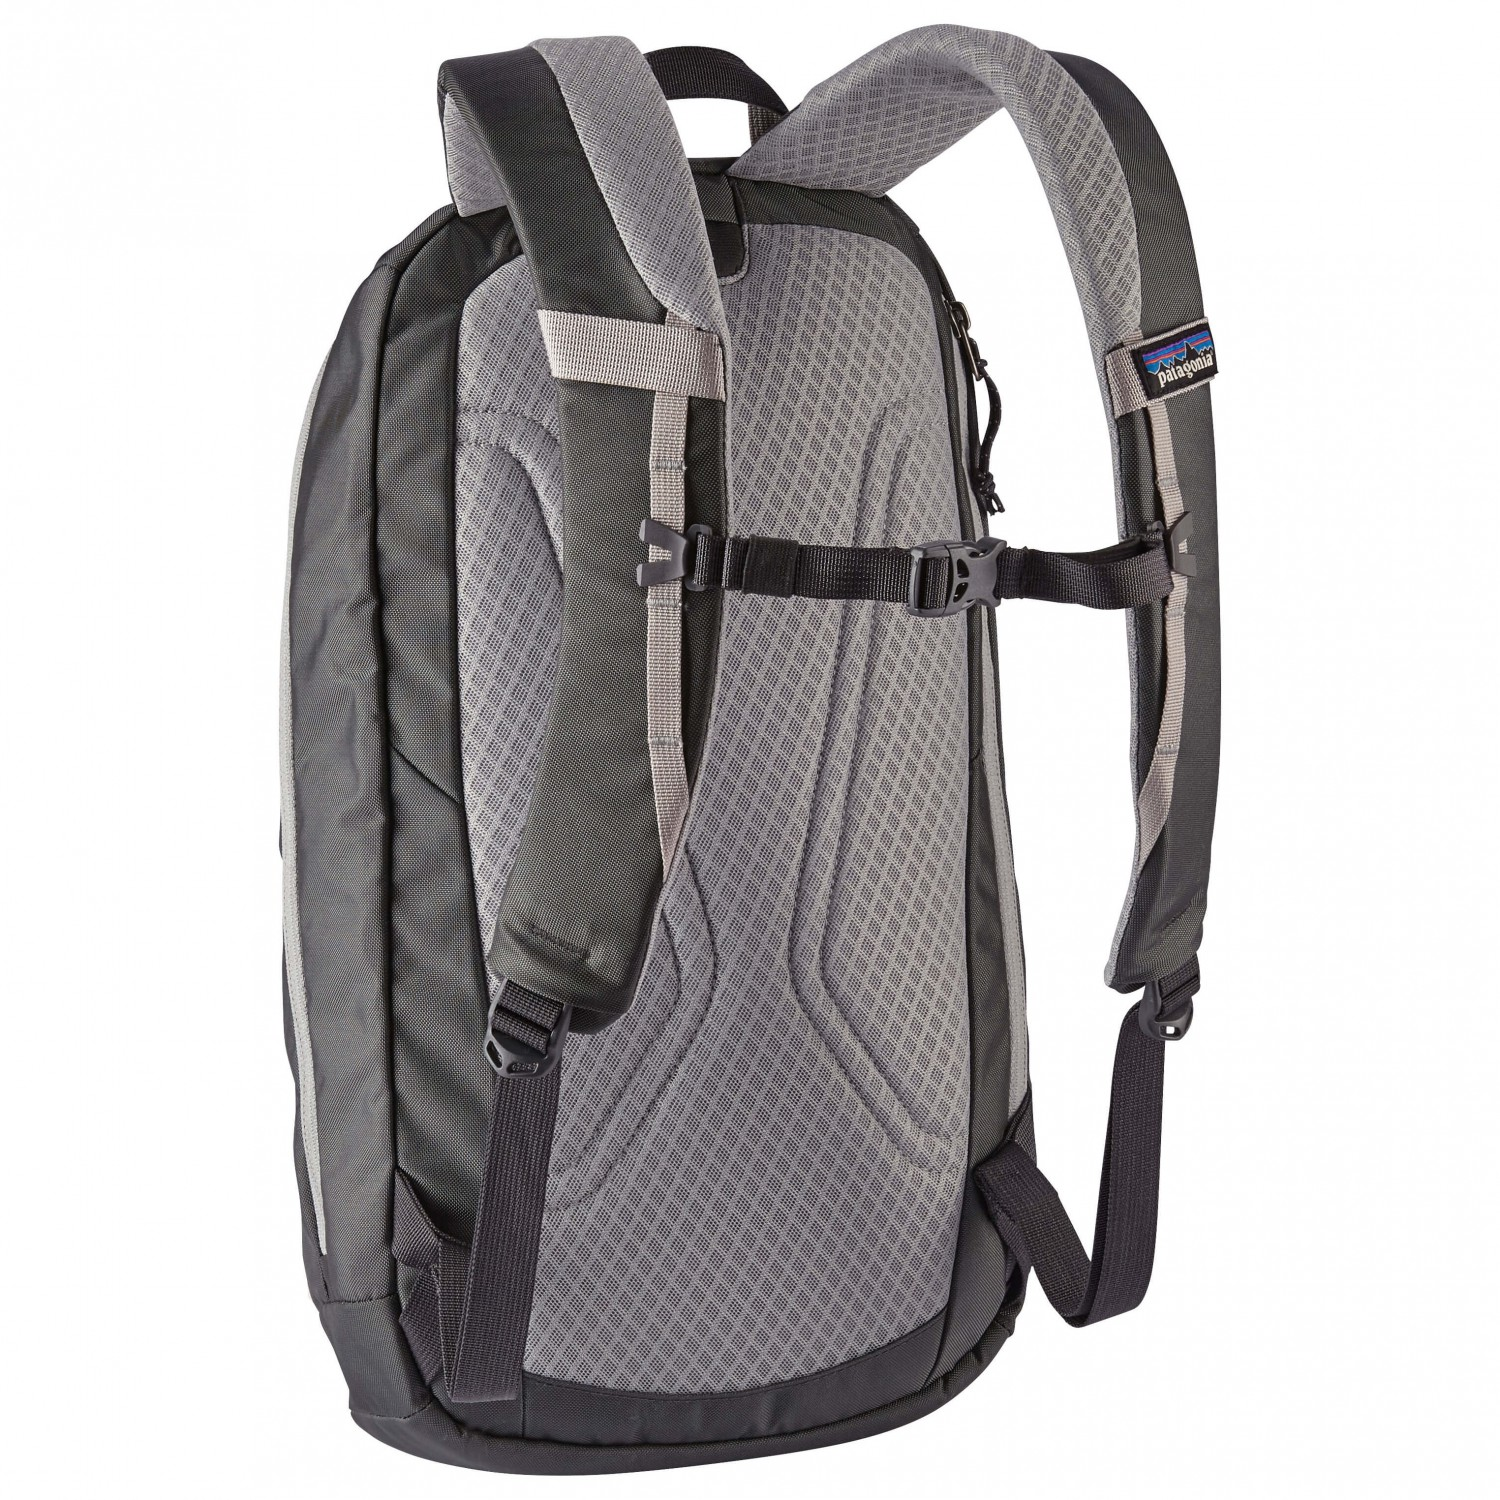 63befd44e22 Patagonia Atom Pack 18L - Daypack | Free UK Delivery | Alpinetrek.co.uk